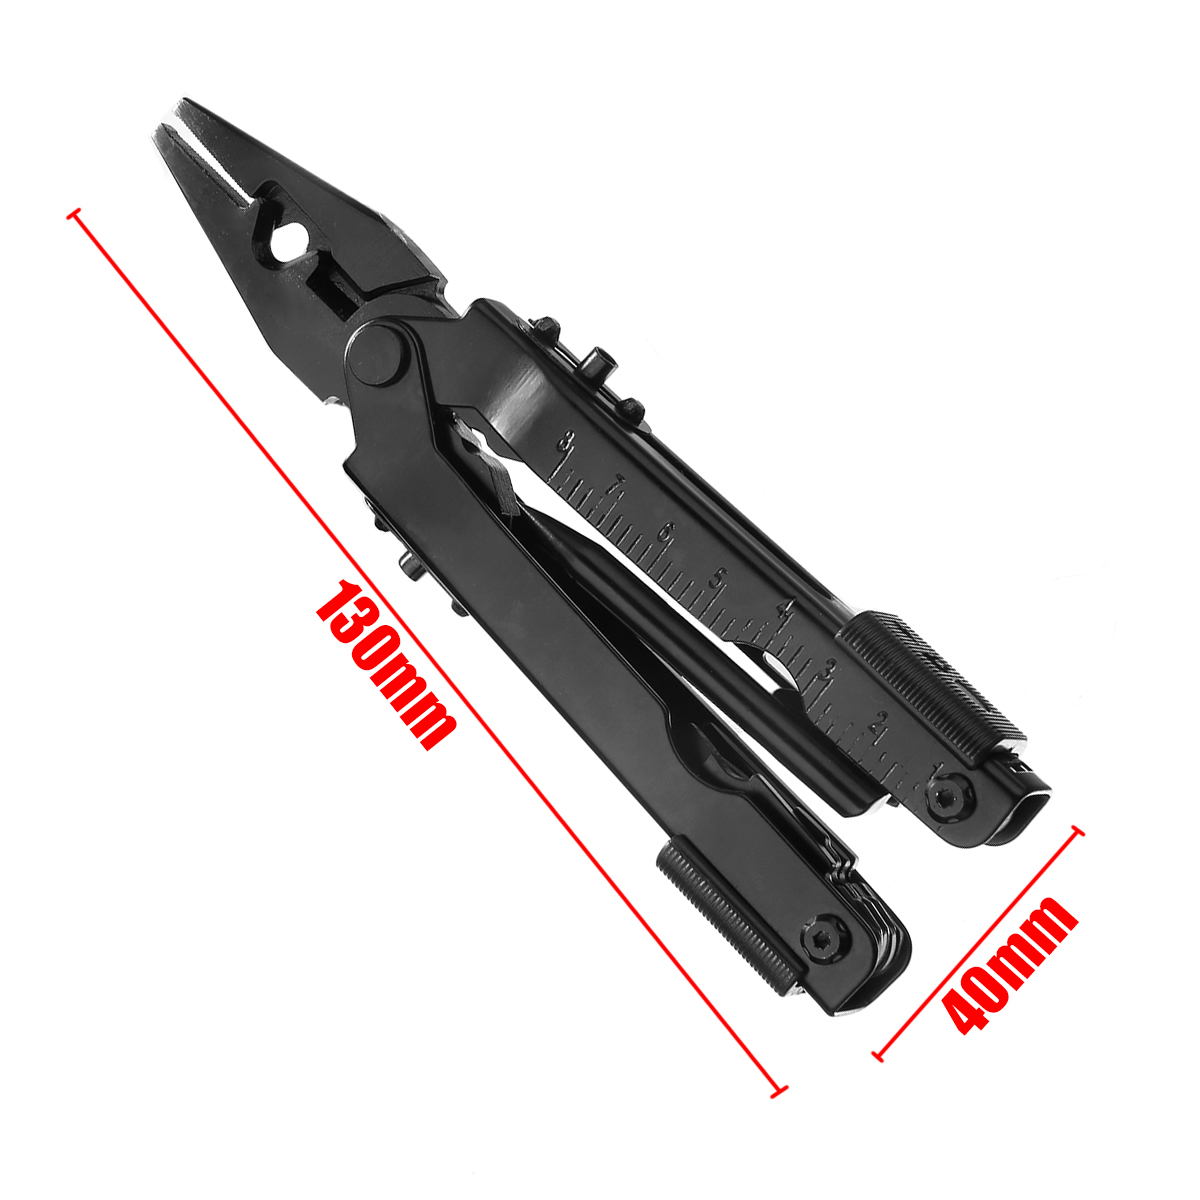 1pc 12 in 1 Portable Outdoor Survival Tool Stainless Steel Multifunction Tool Folding Plier Black High Quality in Pliers from Tools